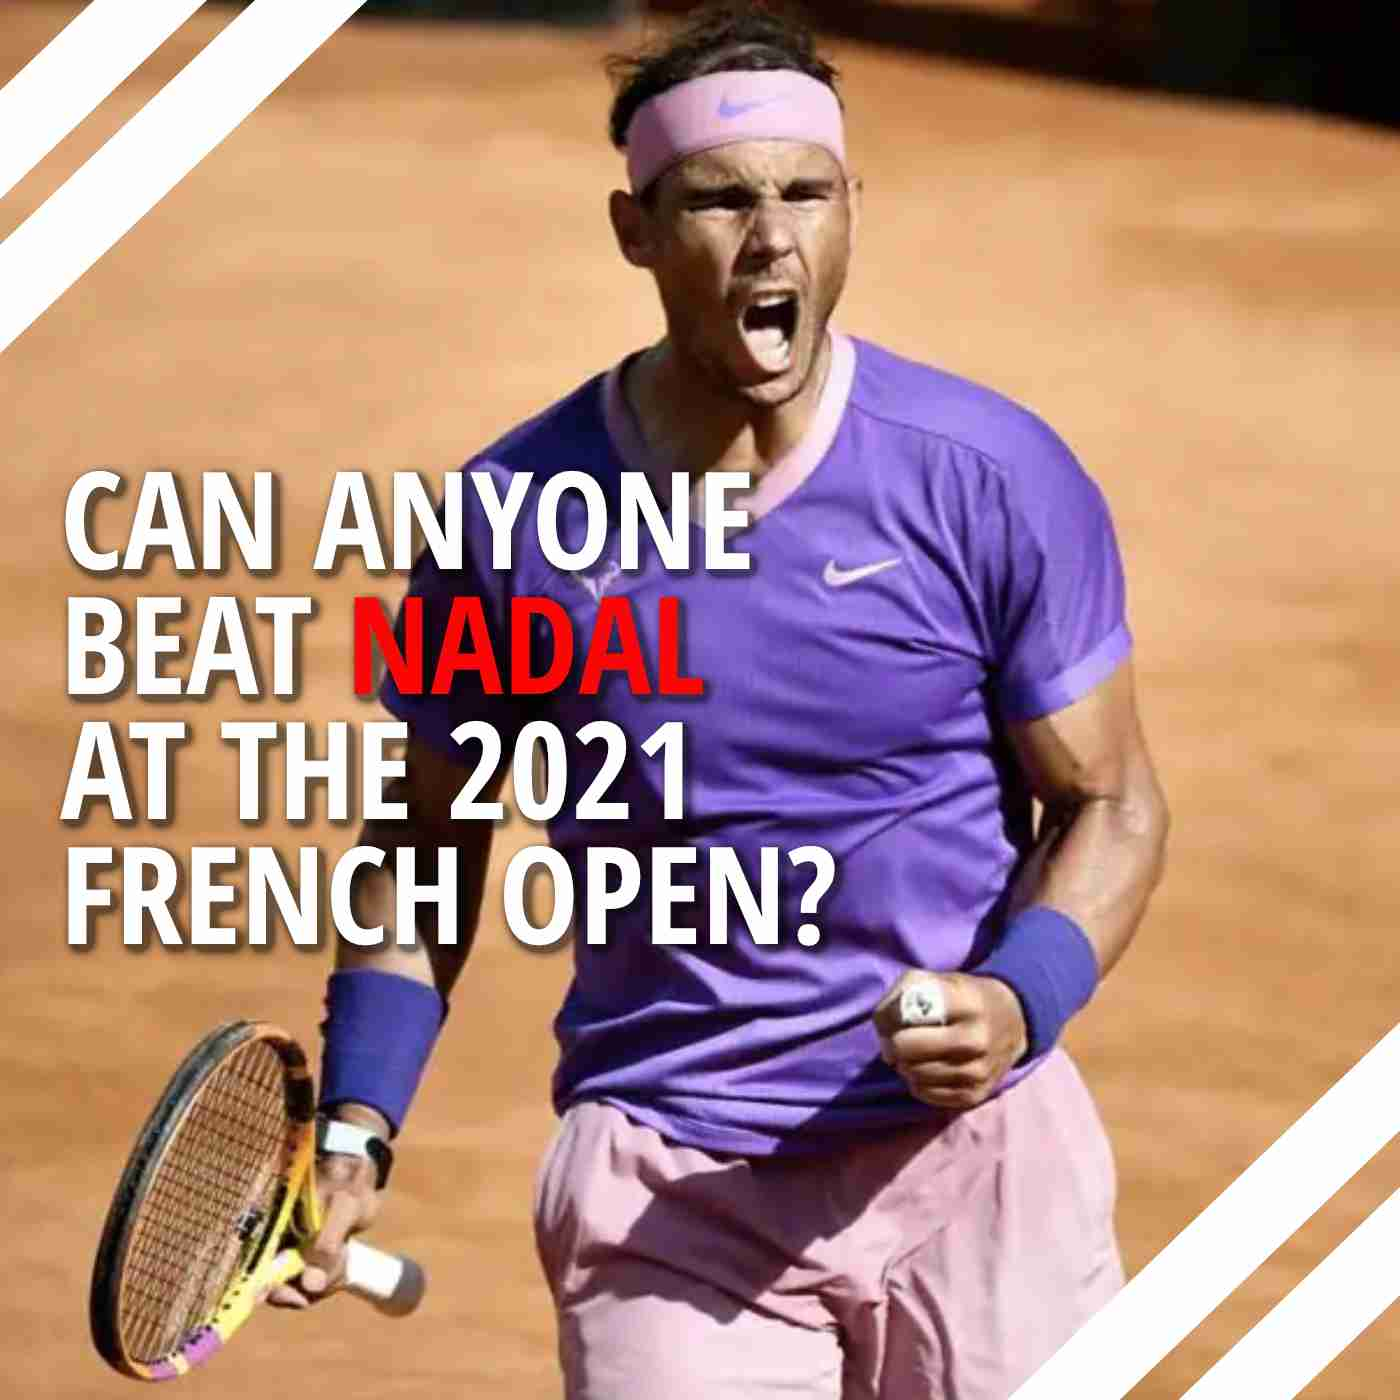 Can Anyone beat Nadal at the 2021 French Open